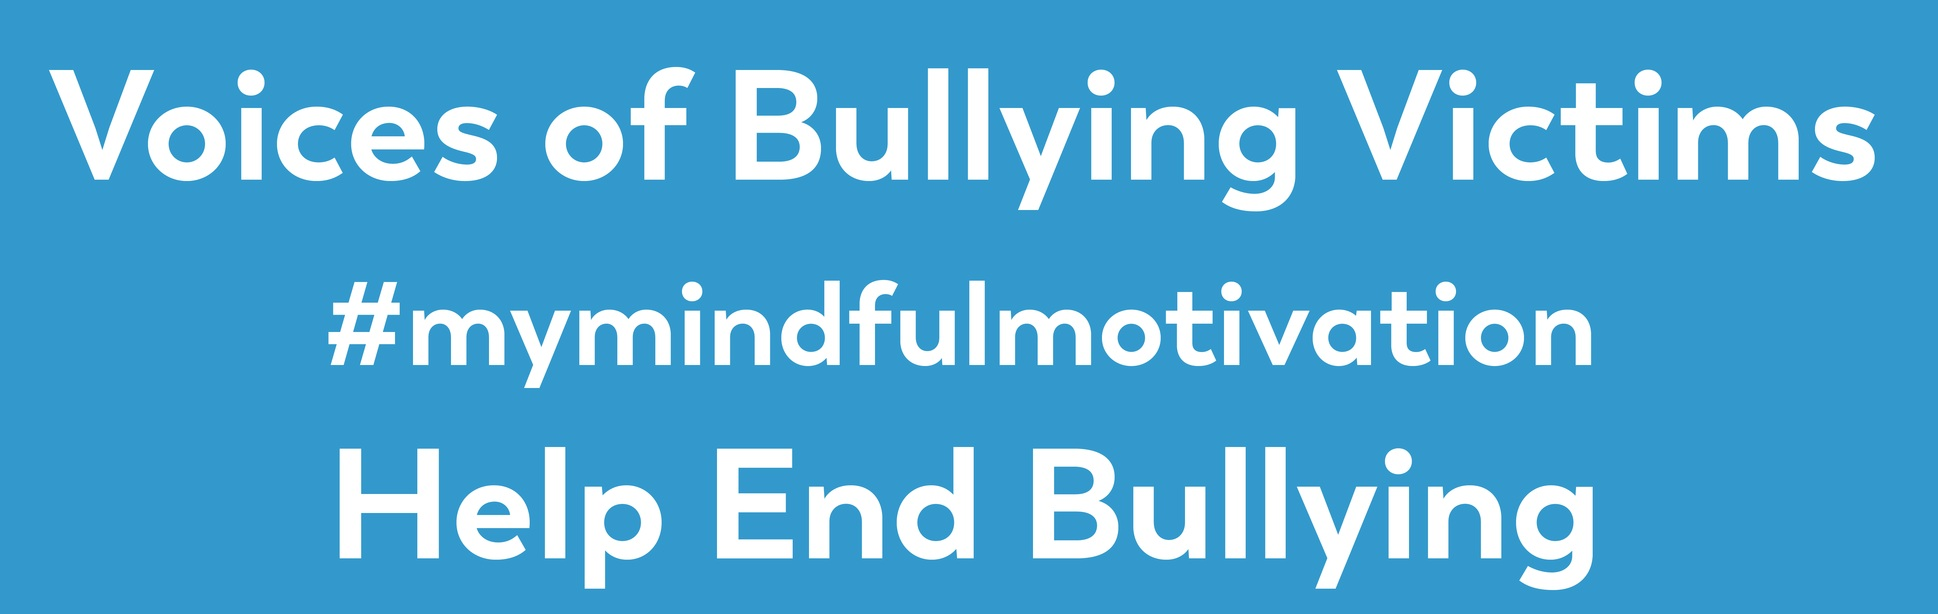 Voices+of+Bullying+Victims.jpg